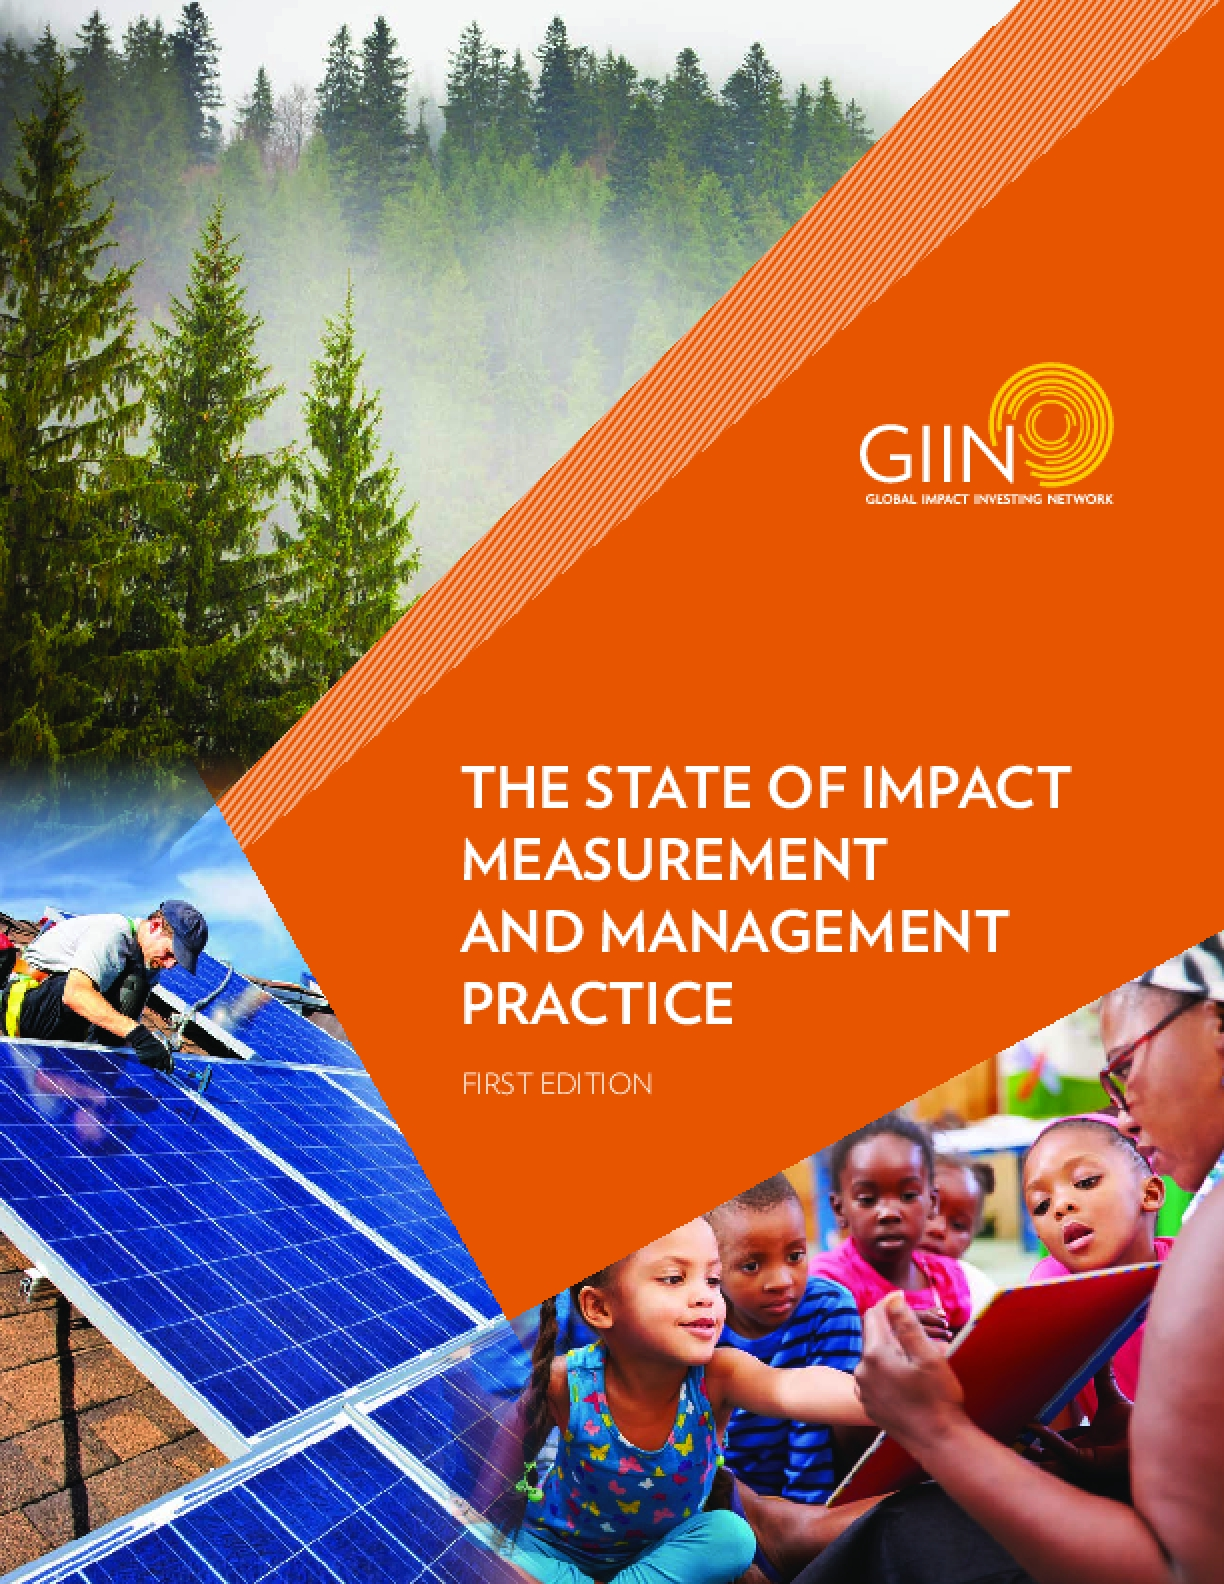 The State of Impact Measurement and Management Practice